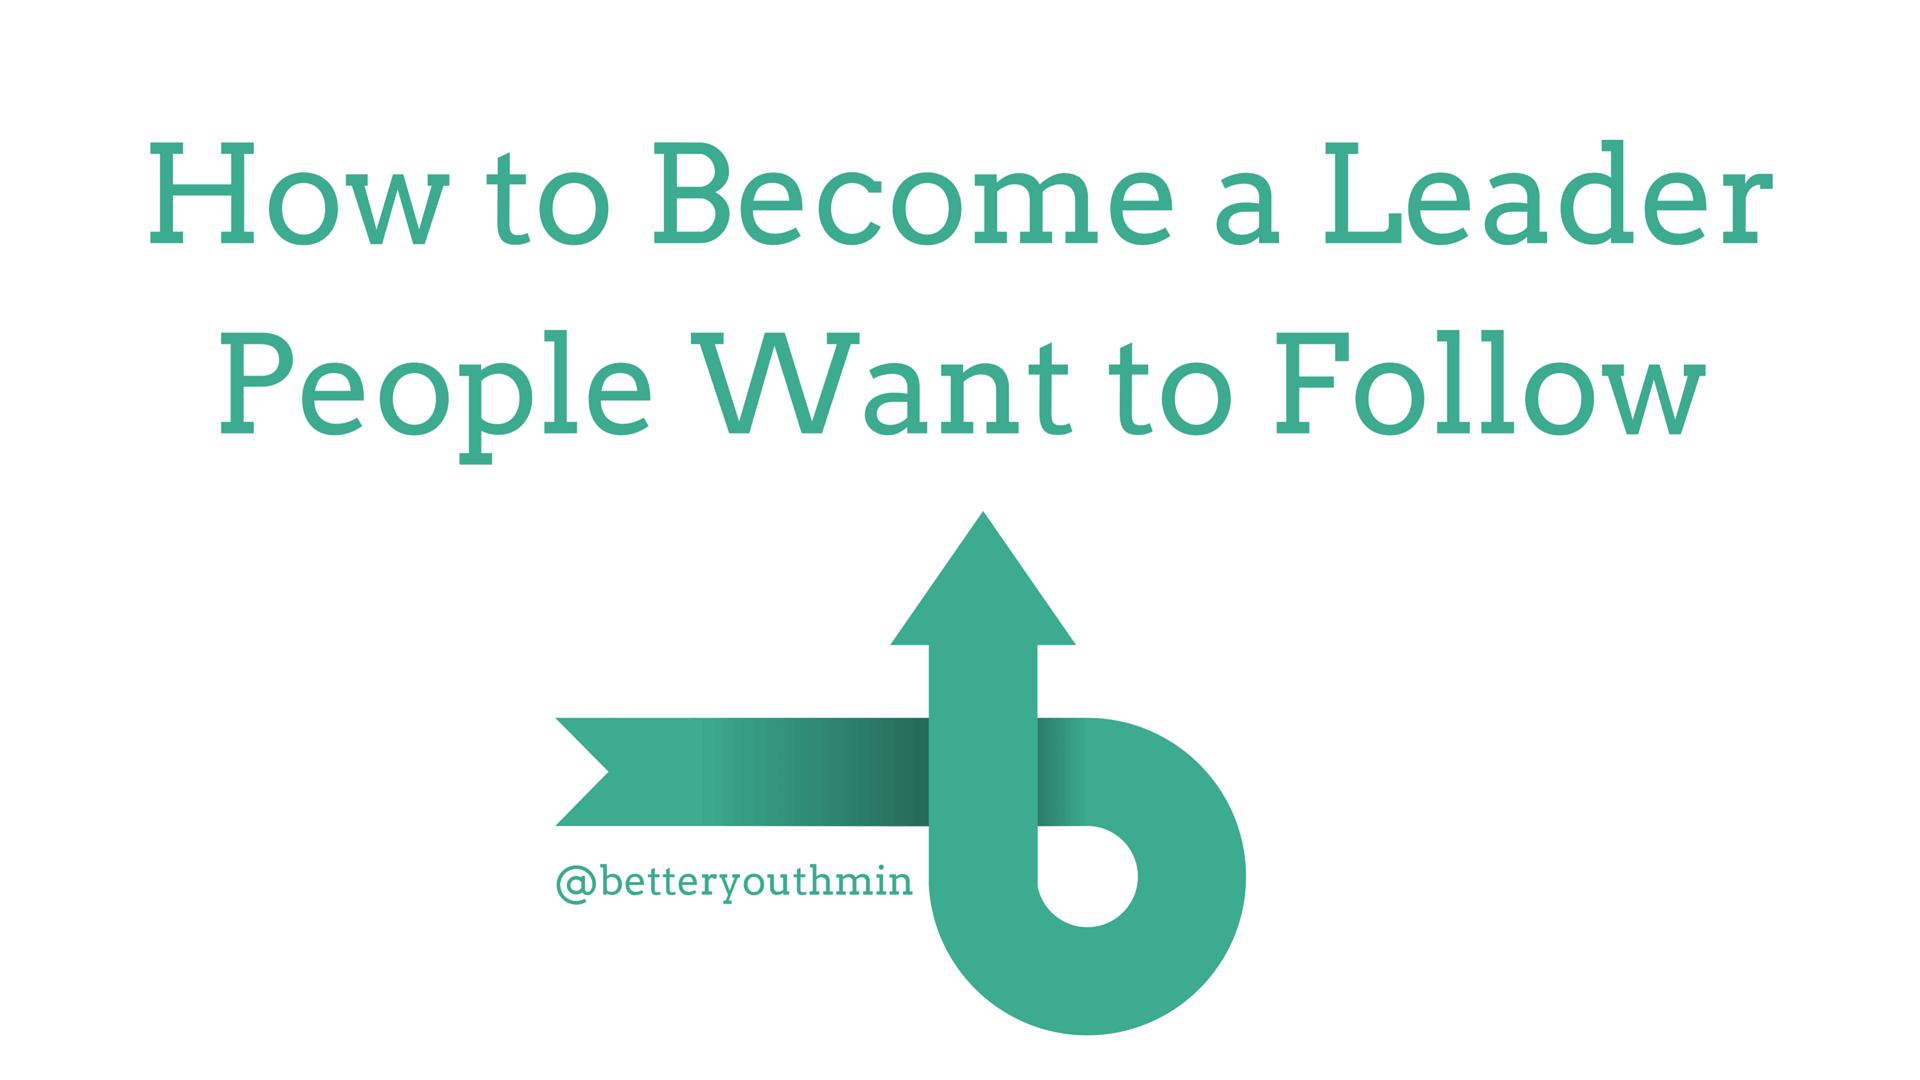 How to Become a Leader People Want to Follow